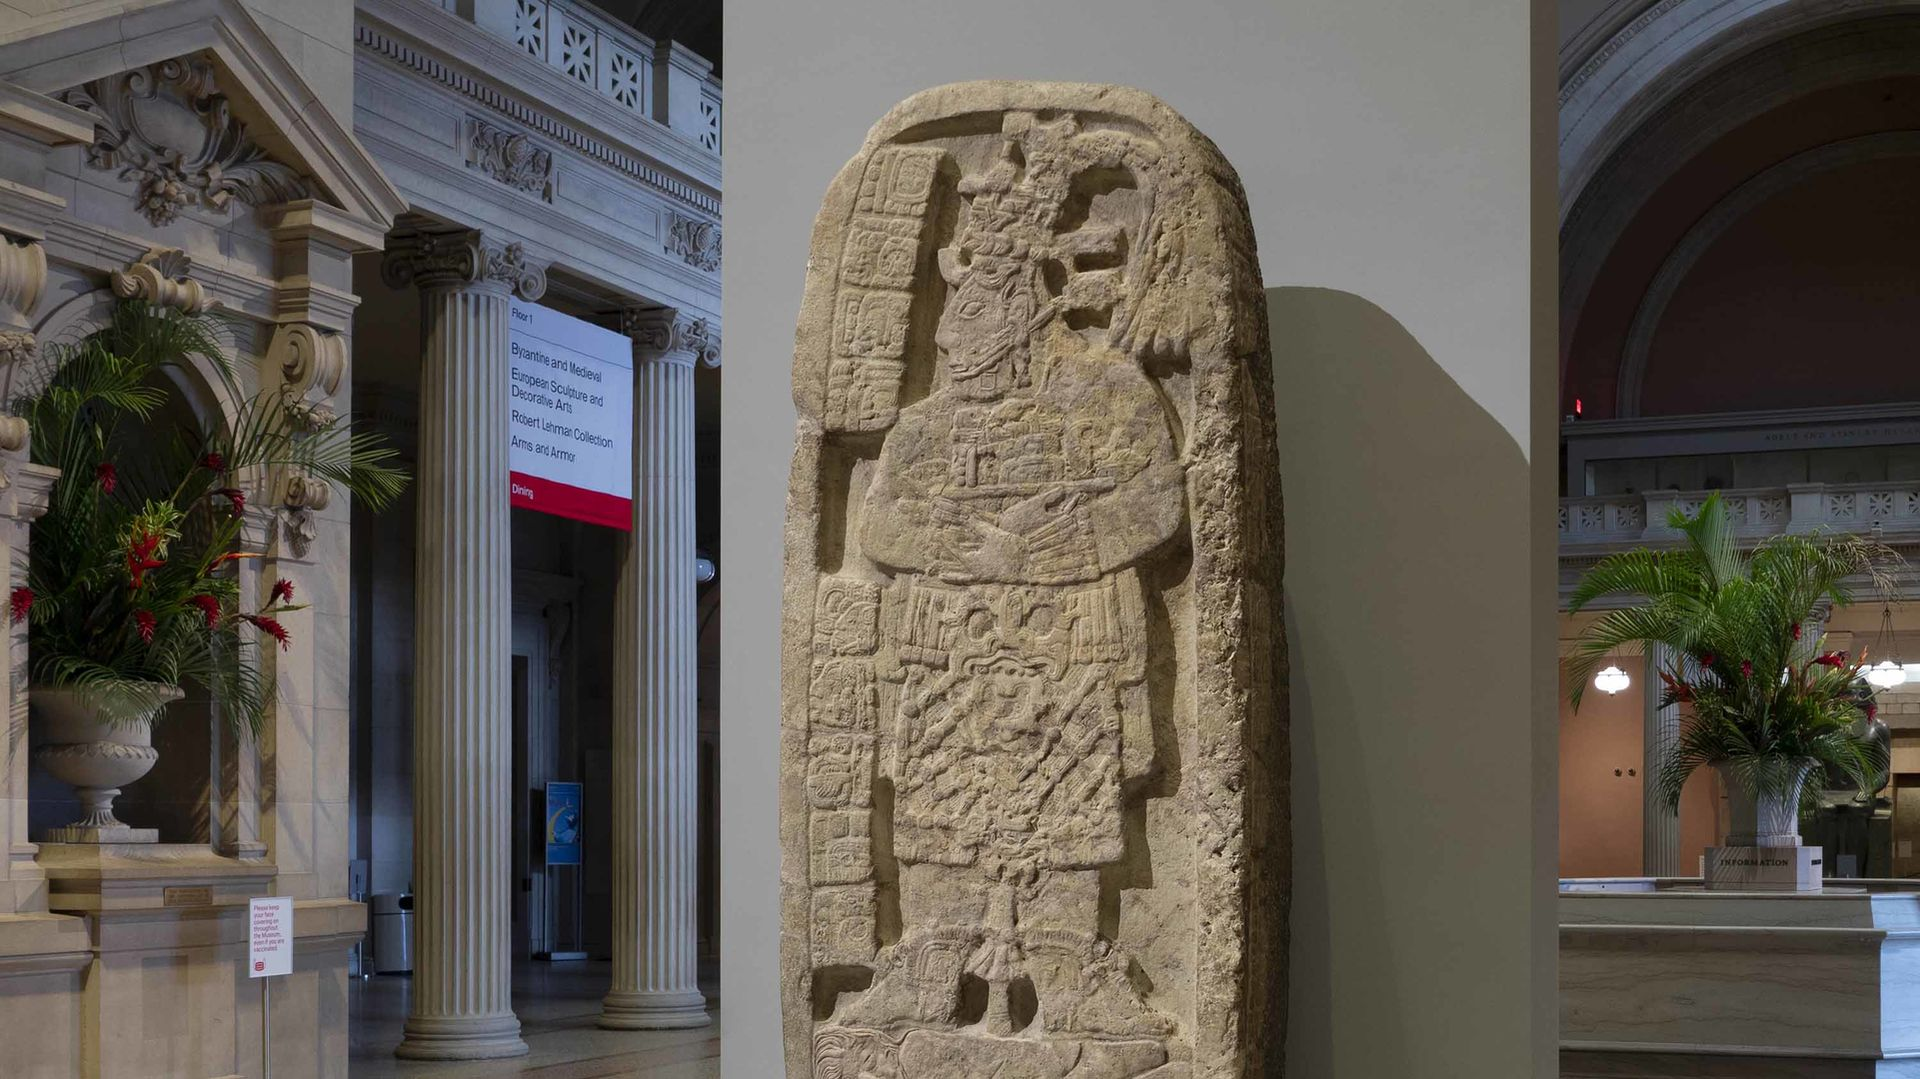 Portrait of a queen regent trampling a captive carved into a stelae, or large decorated stone slab, of Maya origin. The sculpture is installed in the Great Hall at the Museum.